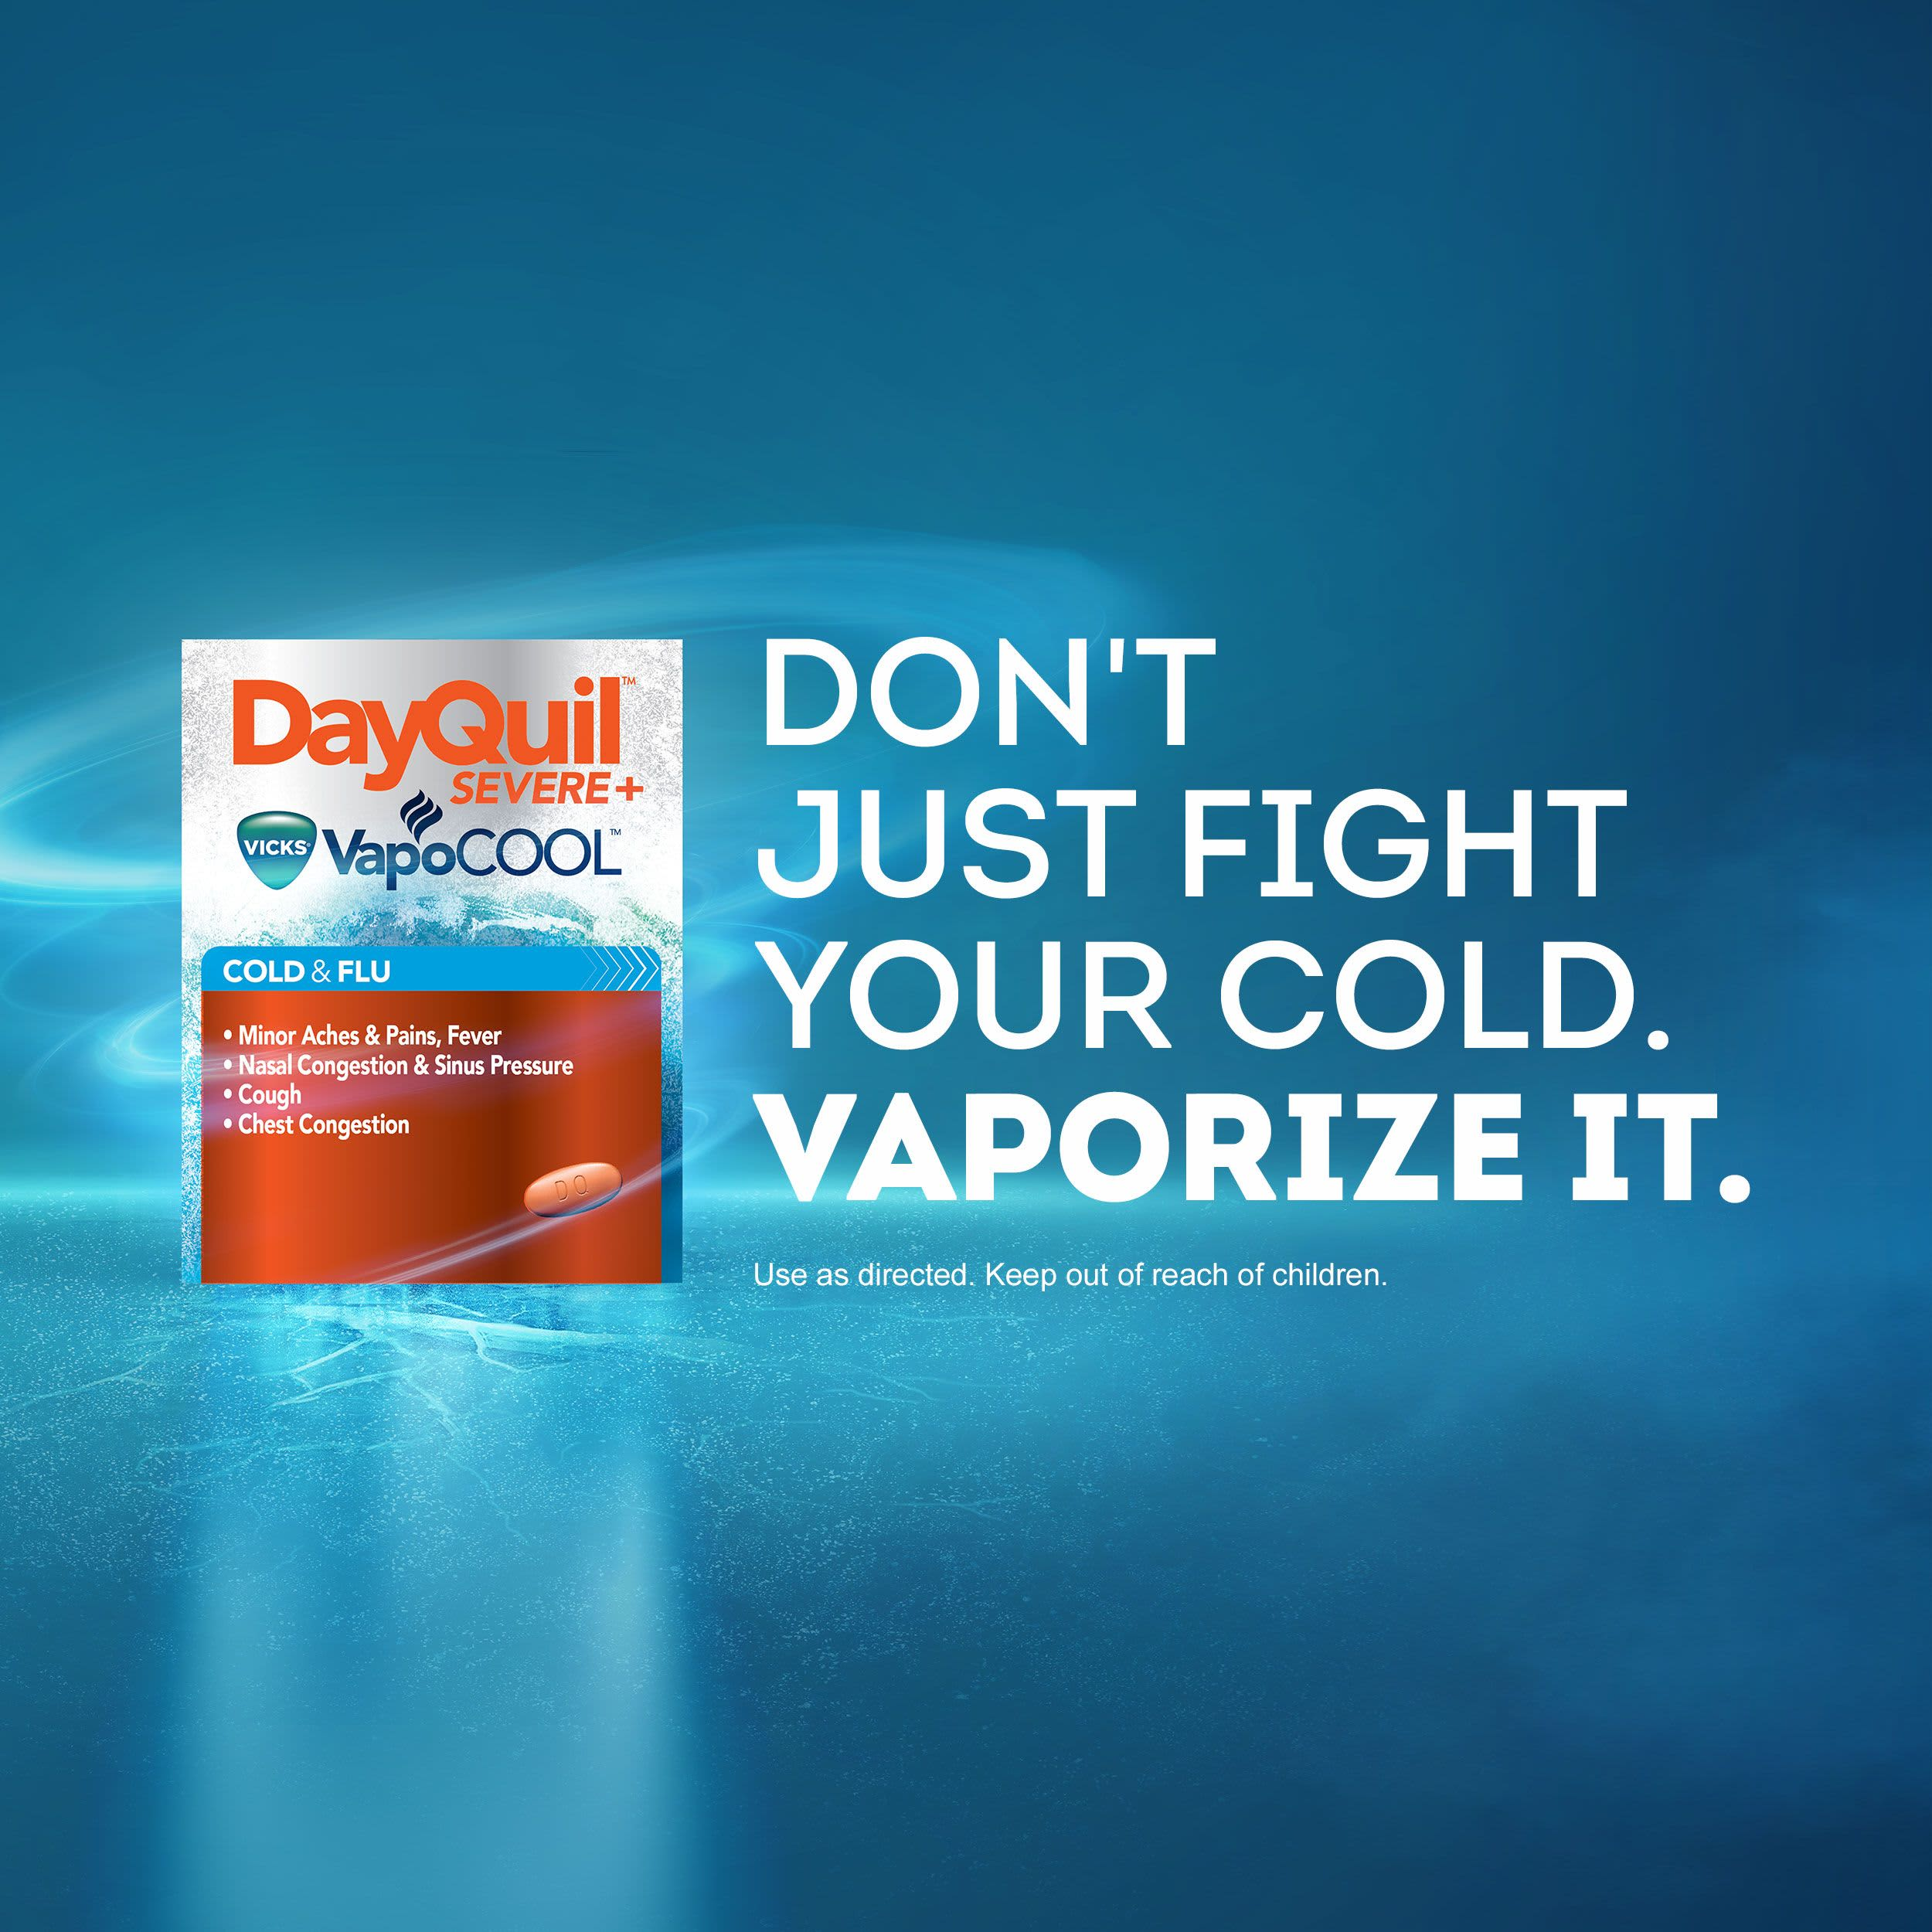 dont-just-fight-your-cold-vaporize-it-dayquil-severe-vapocool